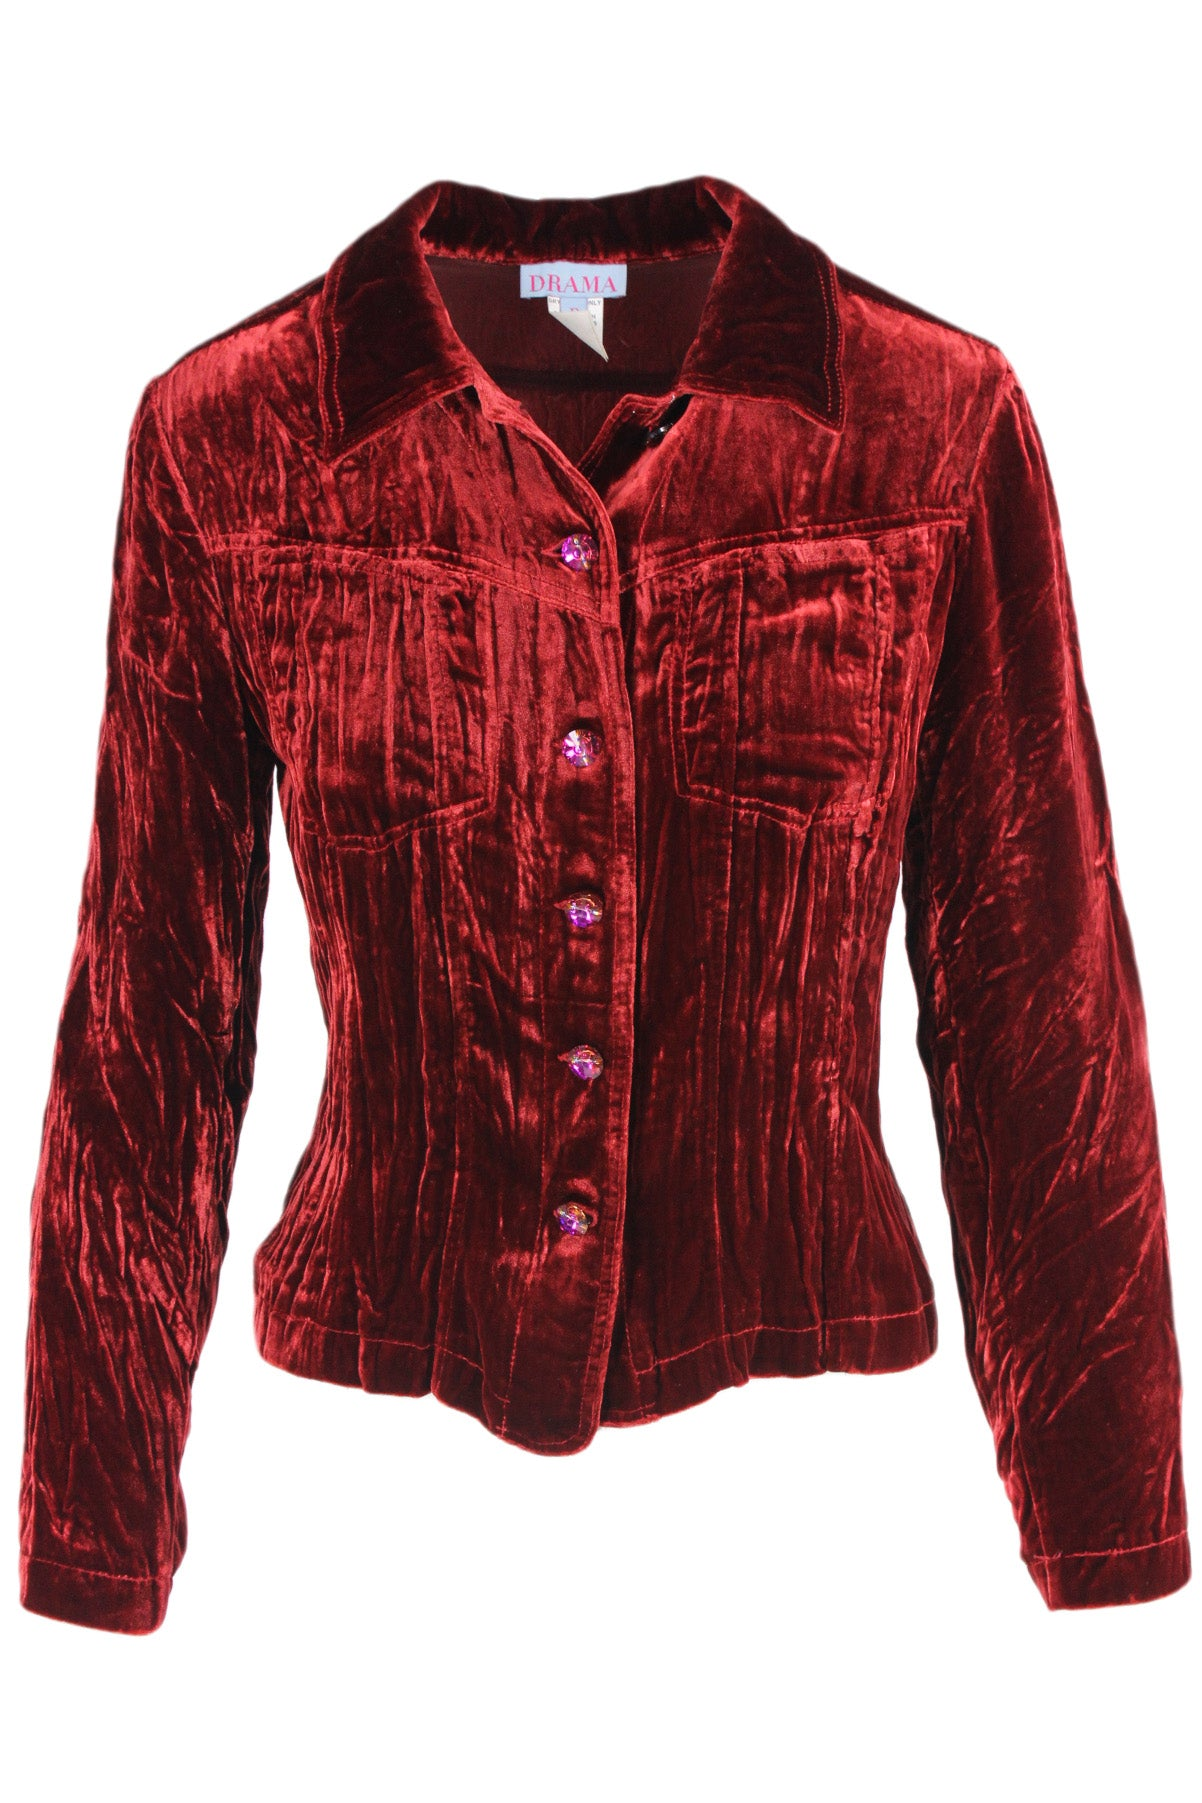 vintage deep red short jacket. features a velvet texture, fuchsia rhinestone button closures, and patch pockets at the chest.